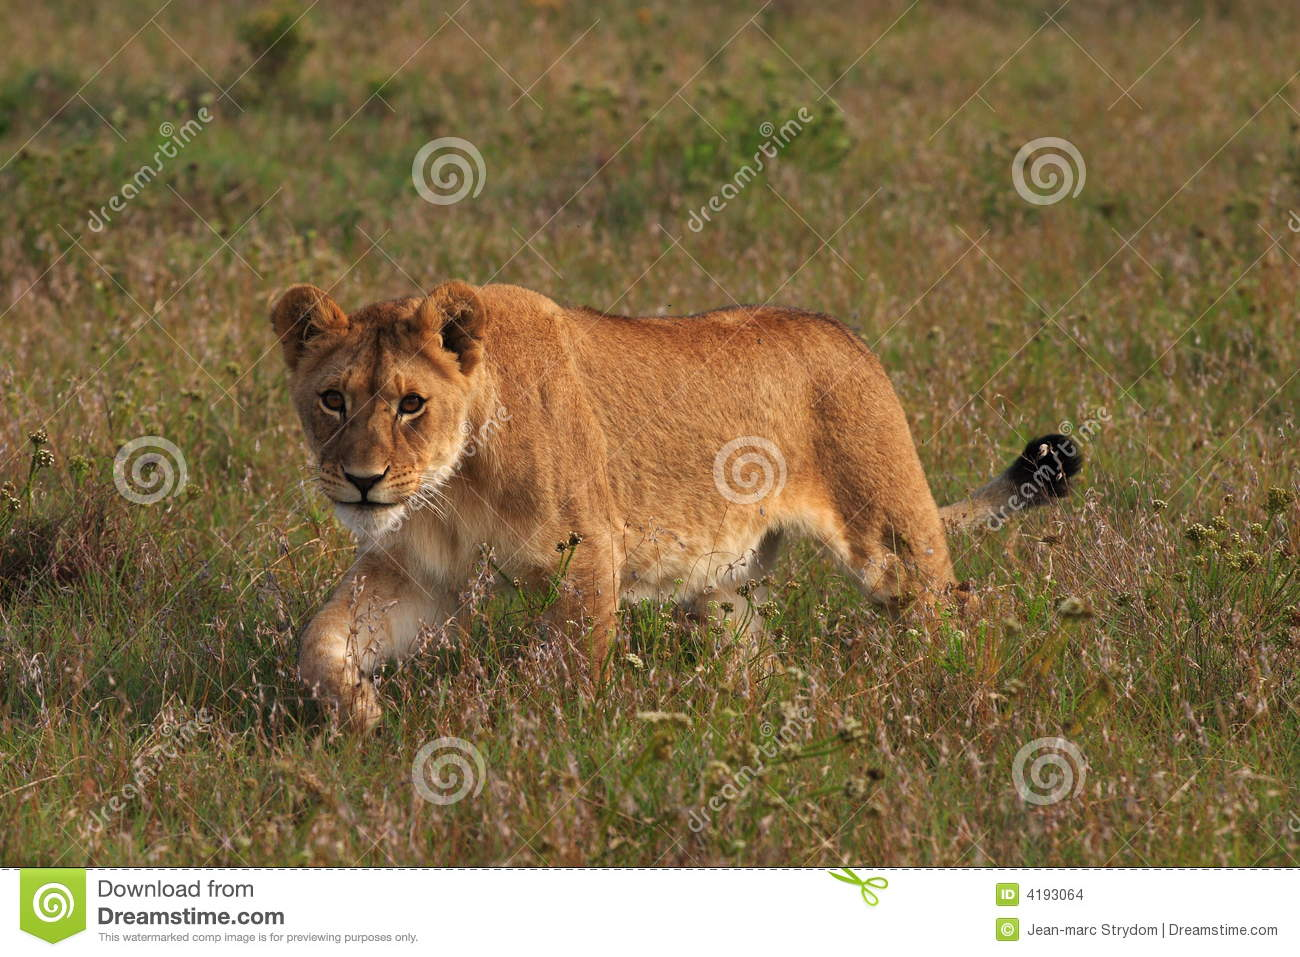 Male lion stalking prey - photo#10